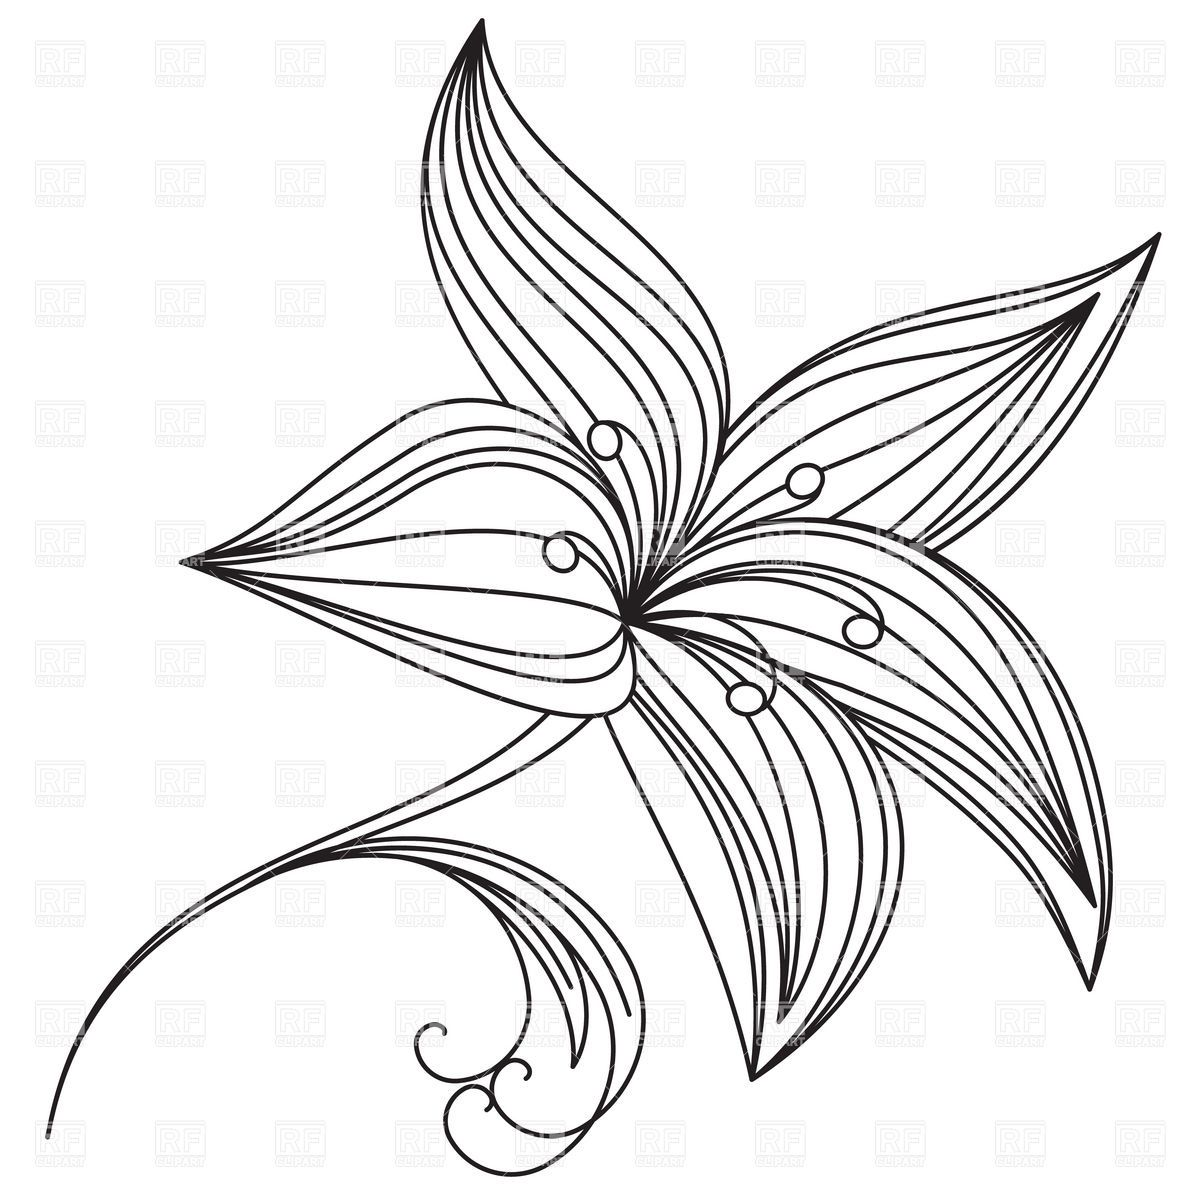 Our lily pictures include single lilies, groups and